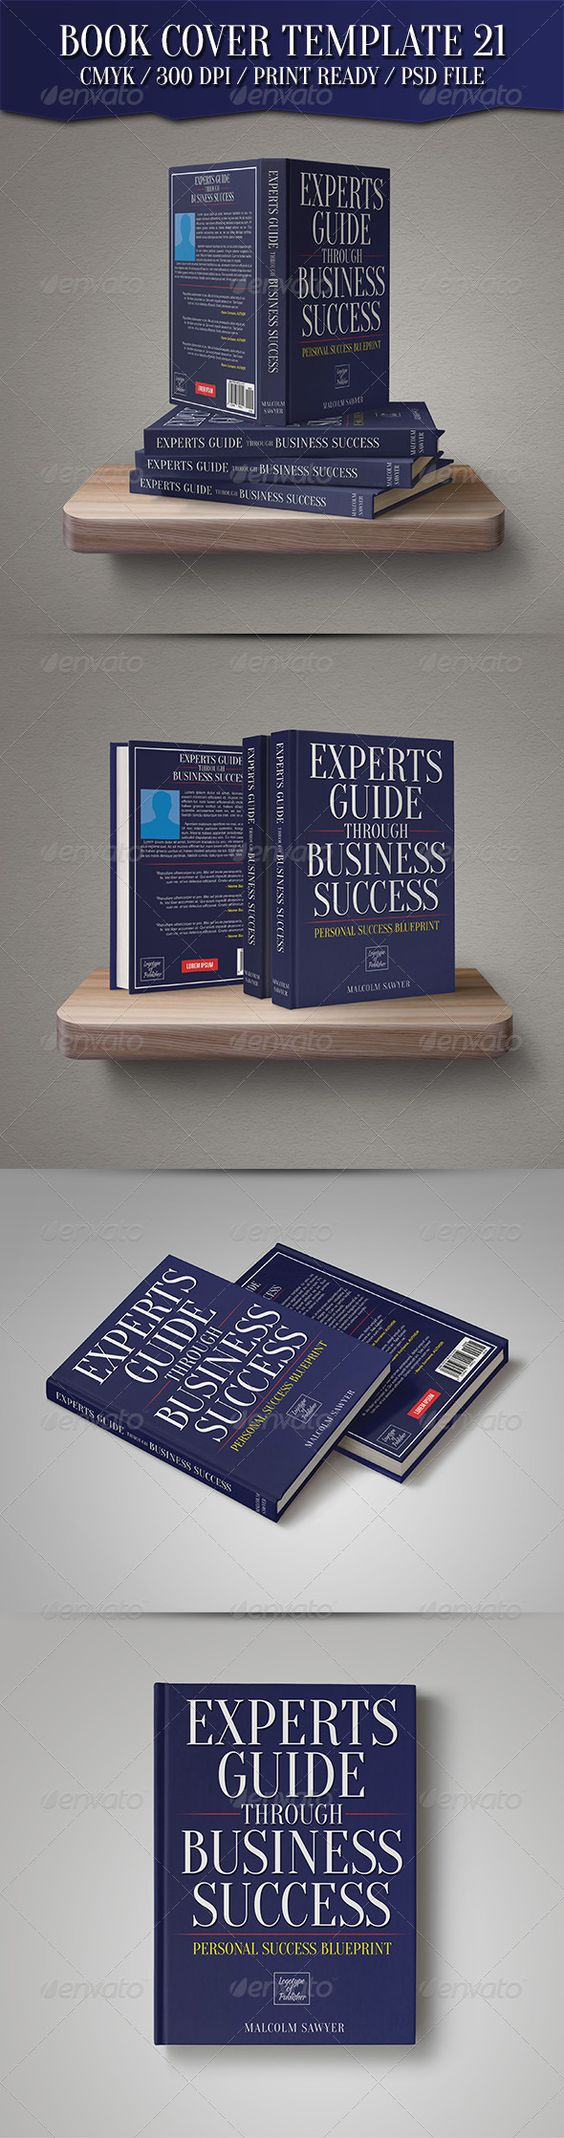 Realistic Graphic DOWNLOAD (.ai, .psd) :: http://vector-graphic.de/pinterest-itmid-1007747094i.html ... Book Cover Template 21 ...  business, capital, company, corporate, create, earn, entrepreneur, guide, hard, income, invest, learn, life, money, story, strategy, success, tale, teach, work  ... Realistic Photo Graphic Print Obejct Business Web Elements Illustration Design Templates ... DOWNLOAD :: http://vector-graphic.de/pinterest-itmid-1007747094i.html